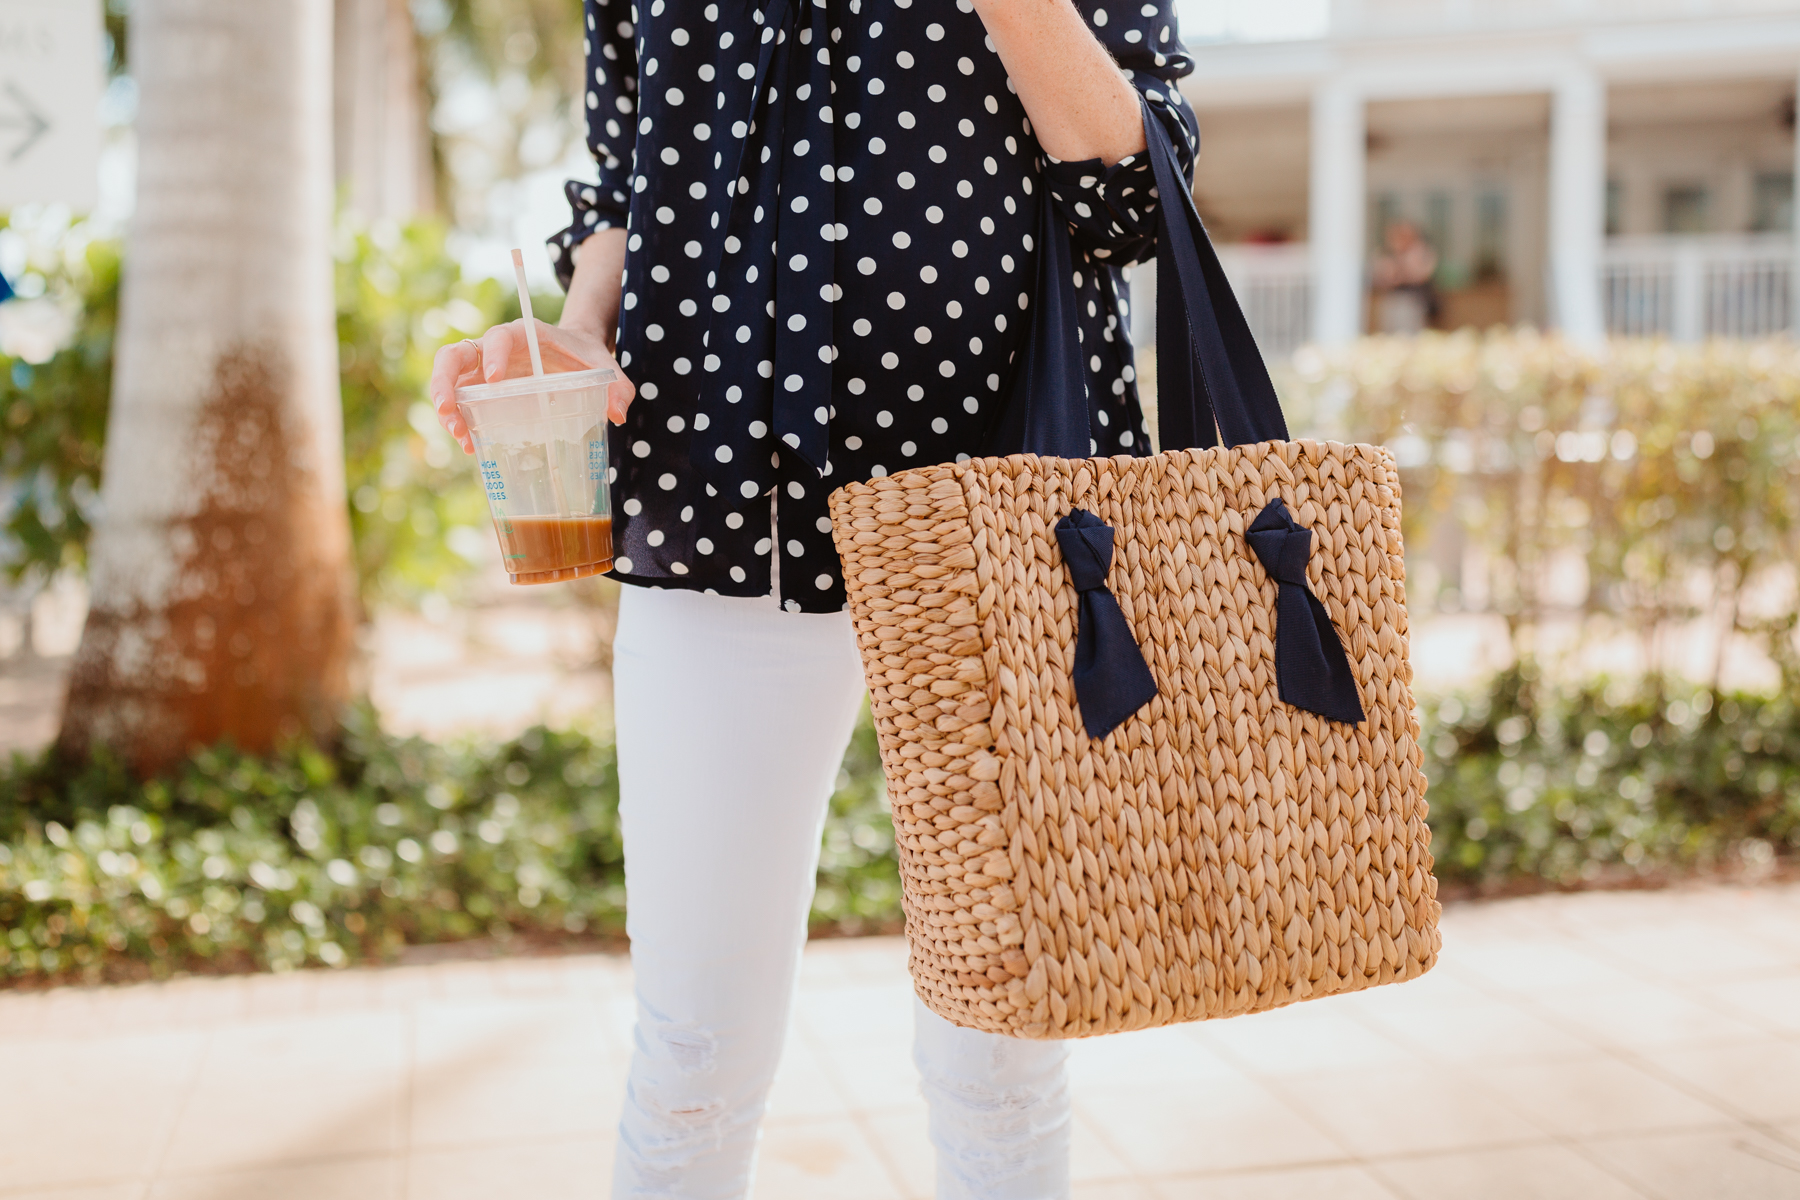 Kelly's Outfit: J.Crew Navy Polka Dot Top /Pamela Munson Woven Tote /J Brand Maternity Ankle Jeans